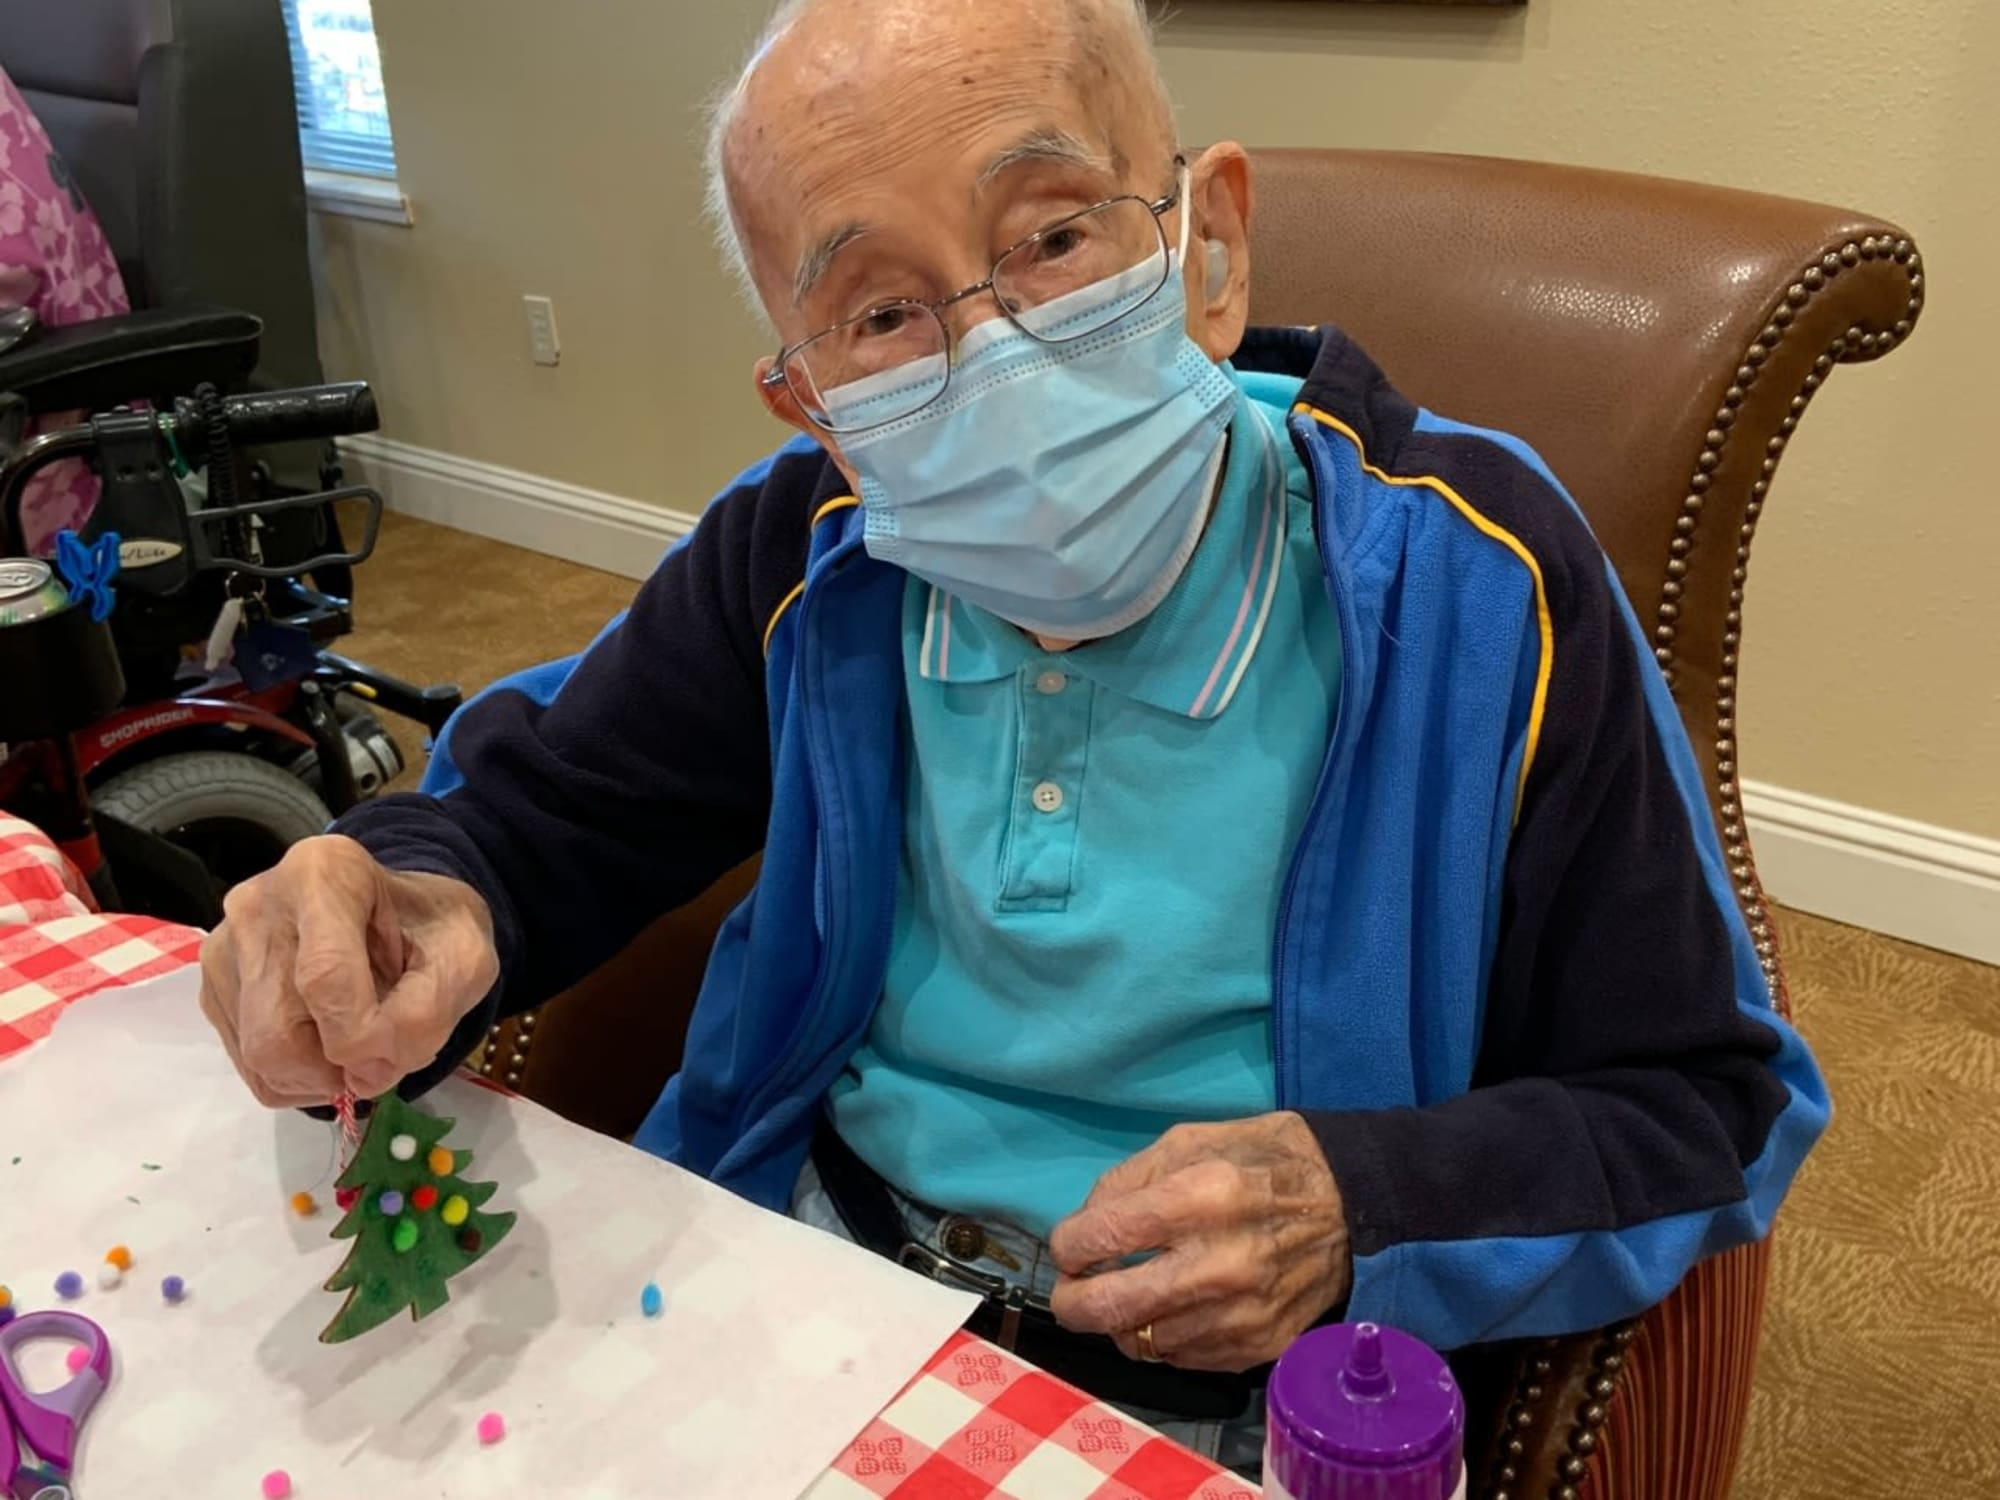 Arts and crafts at The Commons at Elk Grove in Elk Grove, California